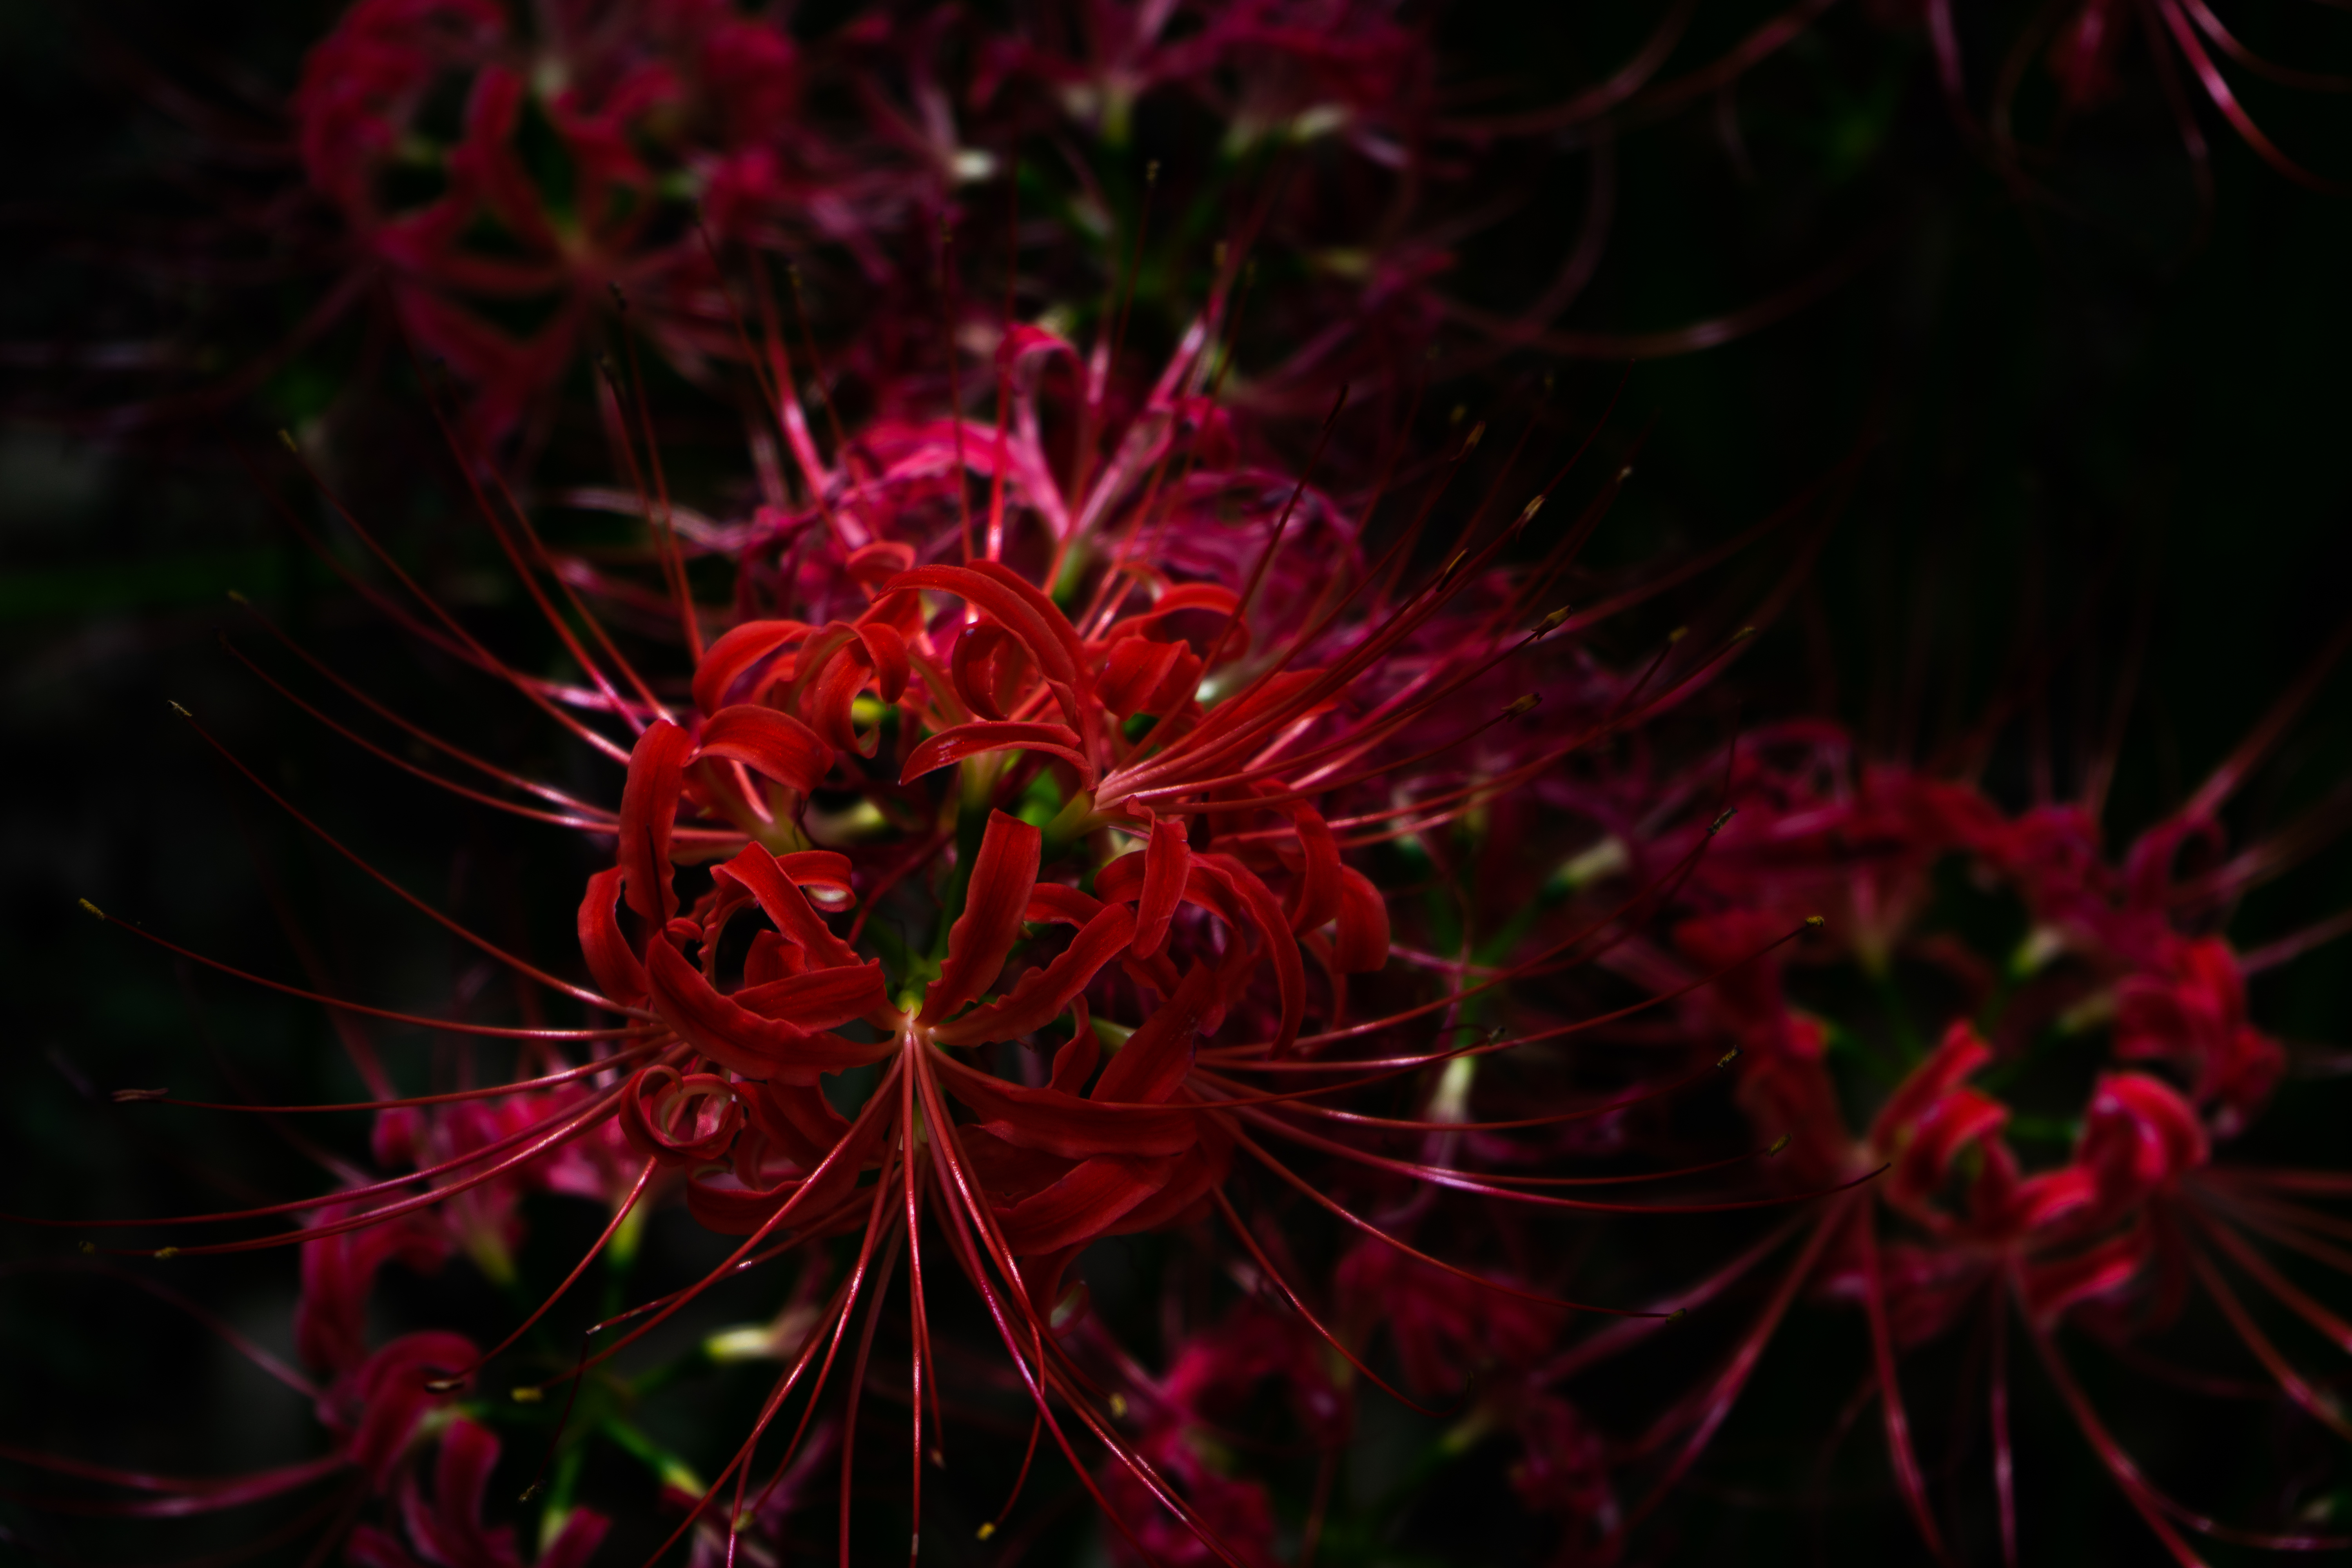 red and green plant in close up photography